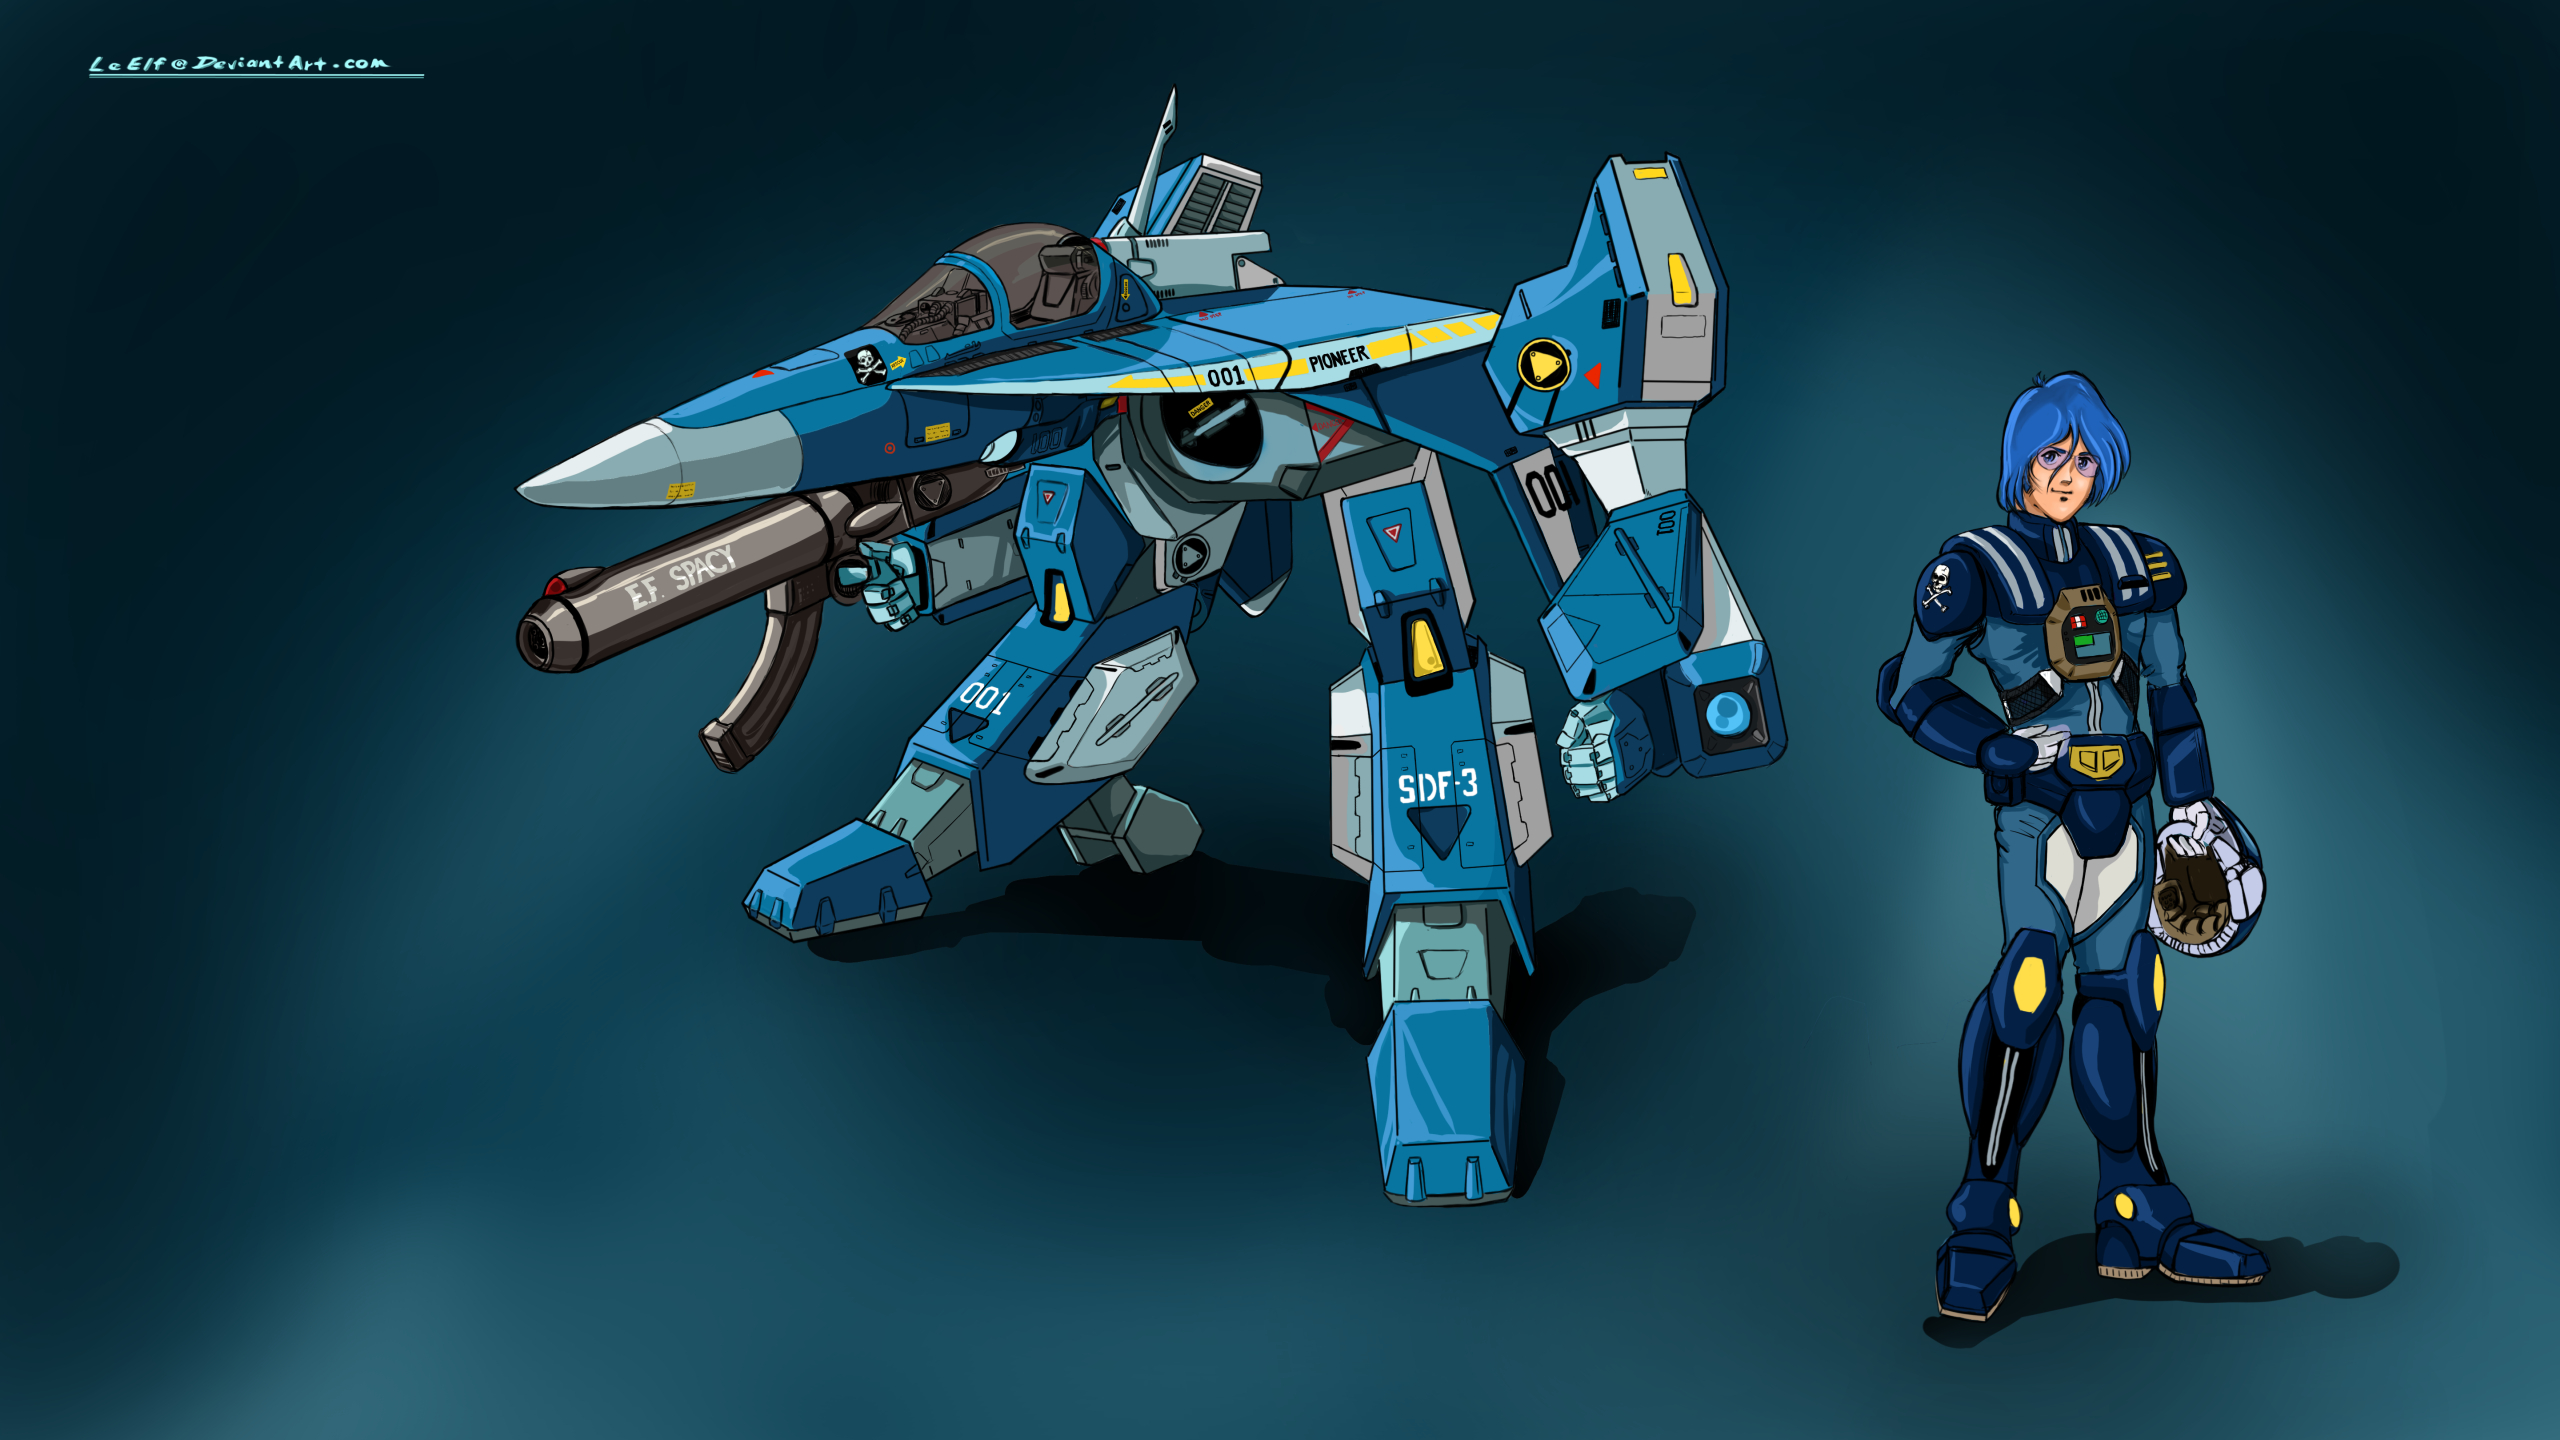 Robotech Vfa 6a Max Type By Leelf On Deviantart